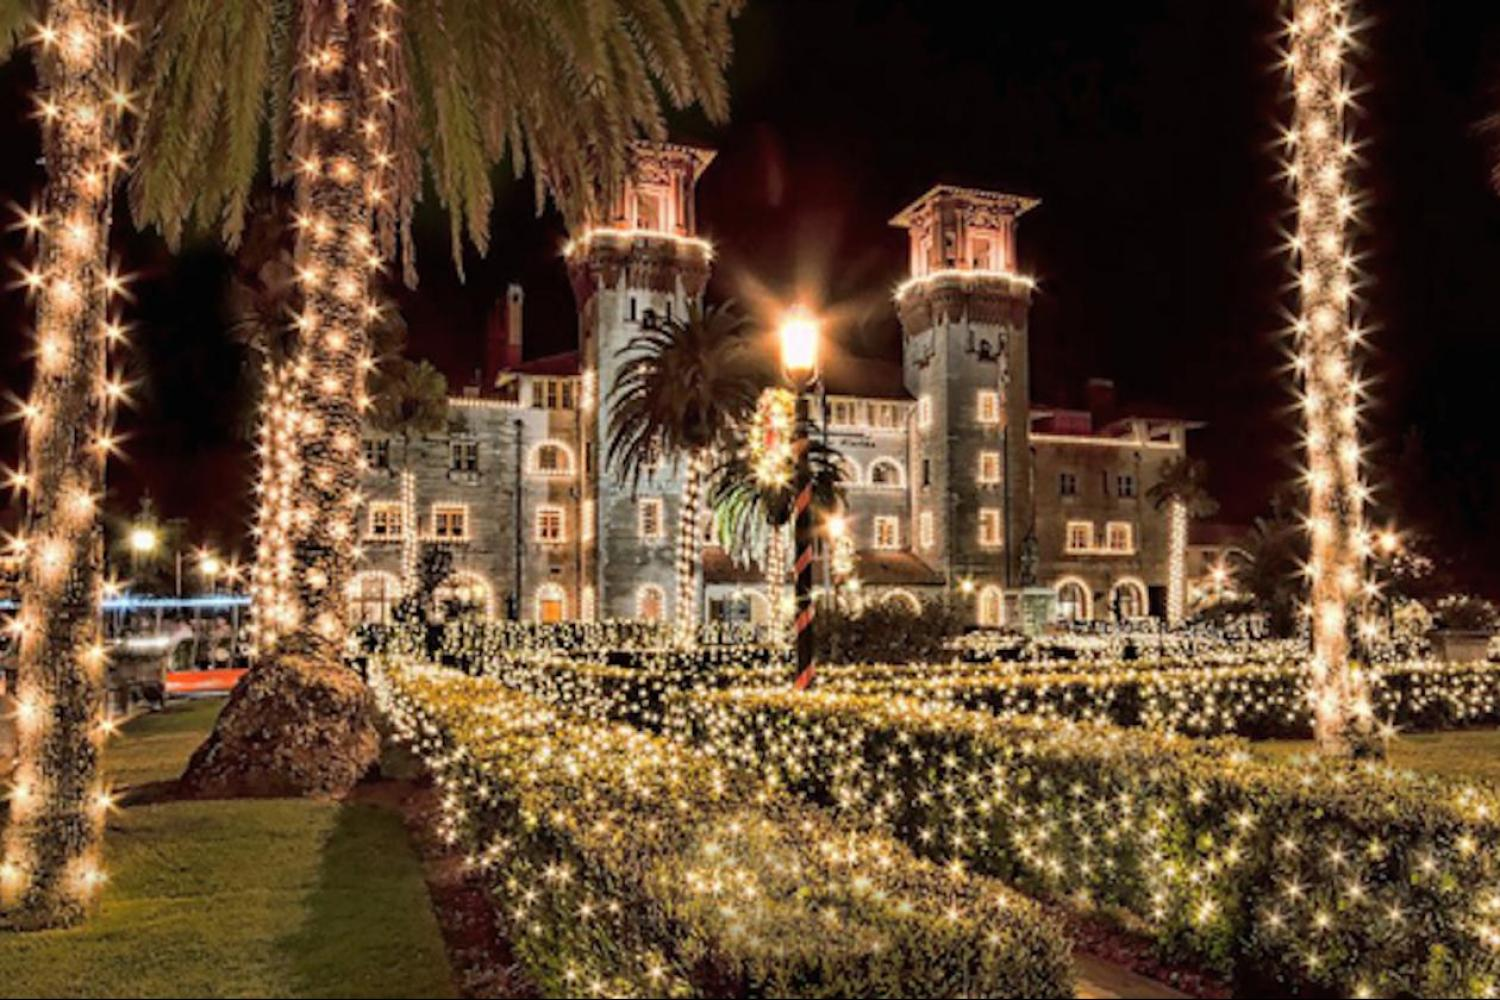 Tivoli Lighting Usa The Top 10 Travel Destinations To Catch The Holiday Spirit